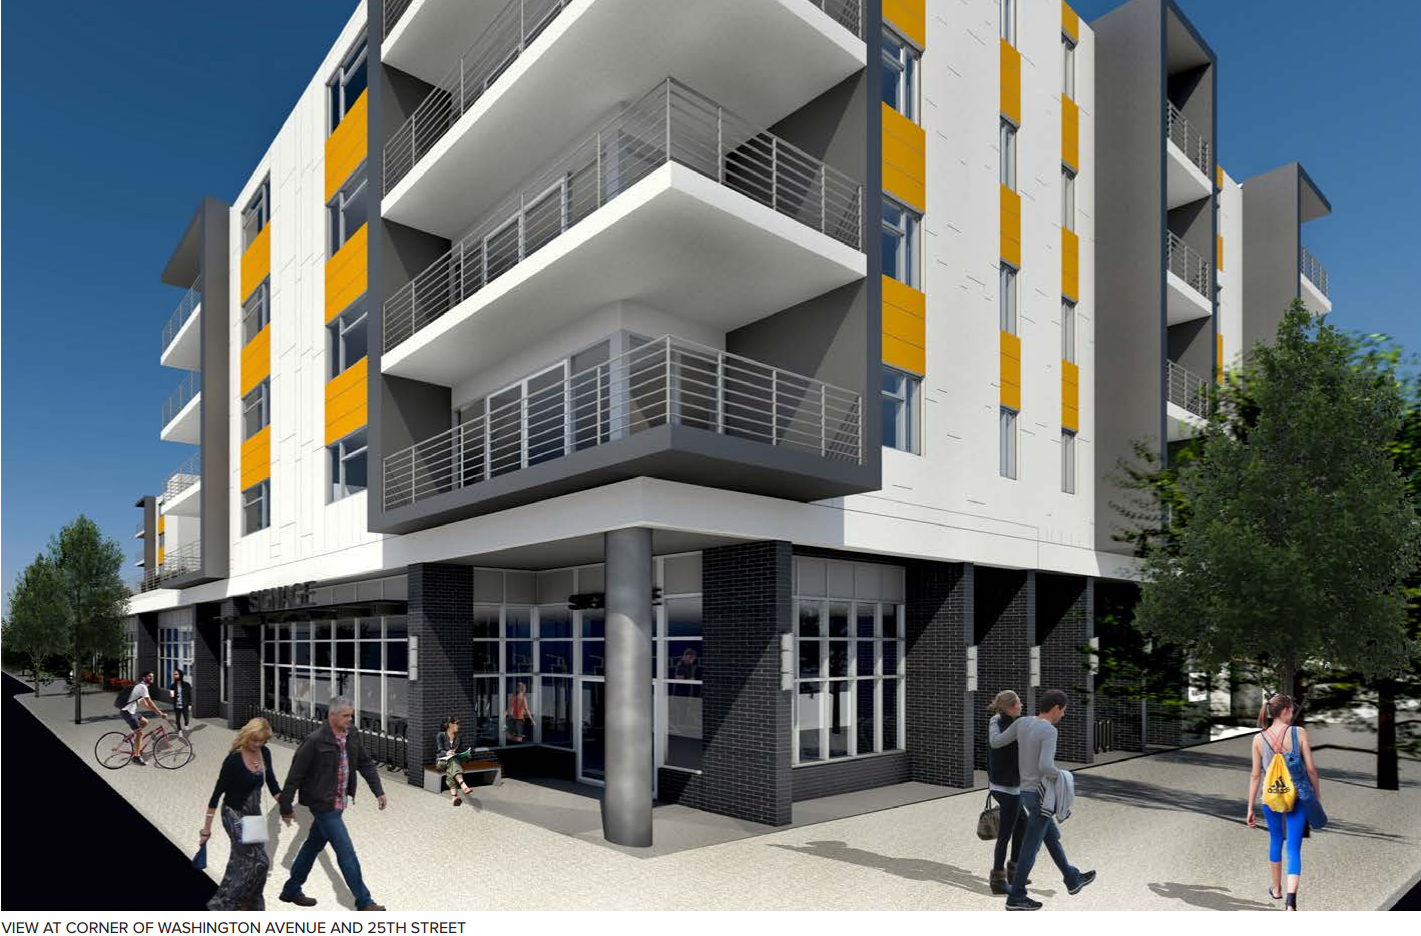 2501 Washington Ave: View of corner of 25th and Washington | CDR presentation Oct 2016